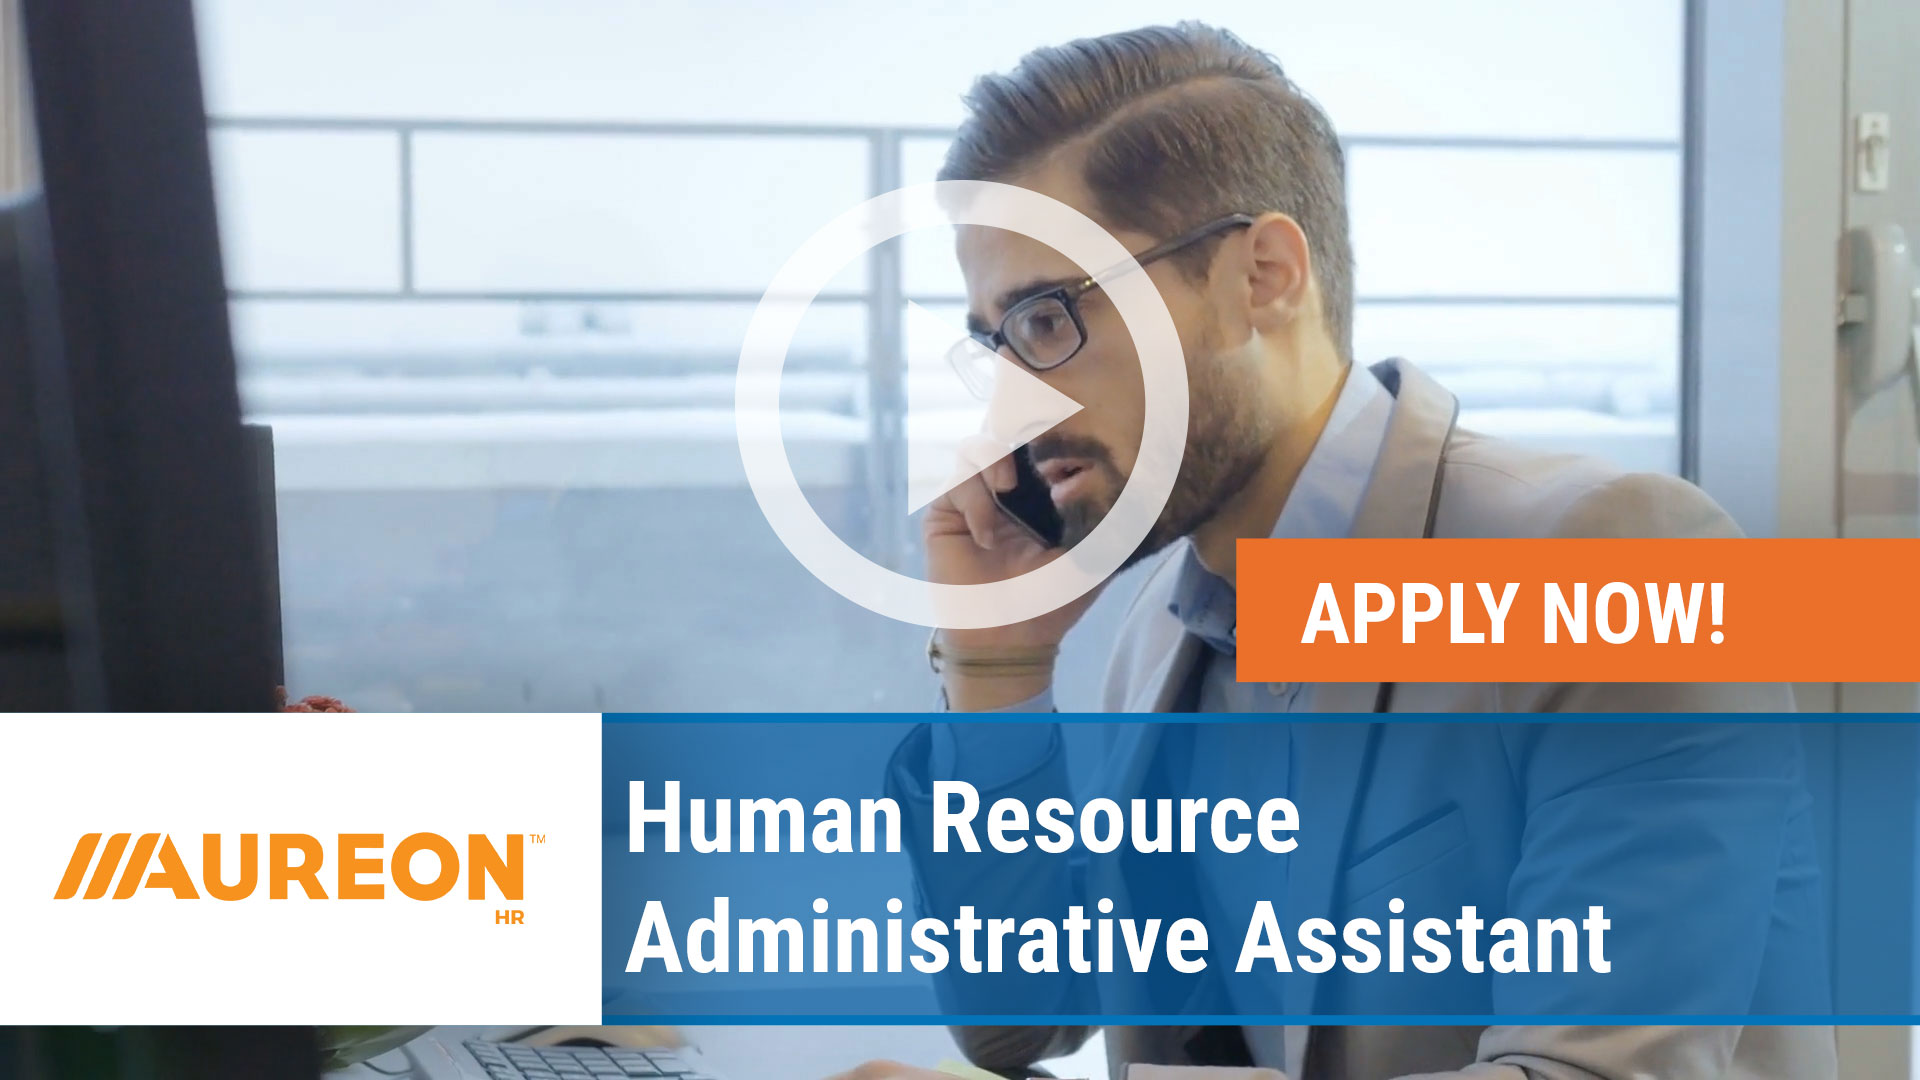 Watch our careers video for available job opening Human Resource Administrative Assistant in Des Moines Downtown, Missouri